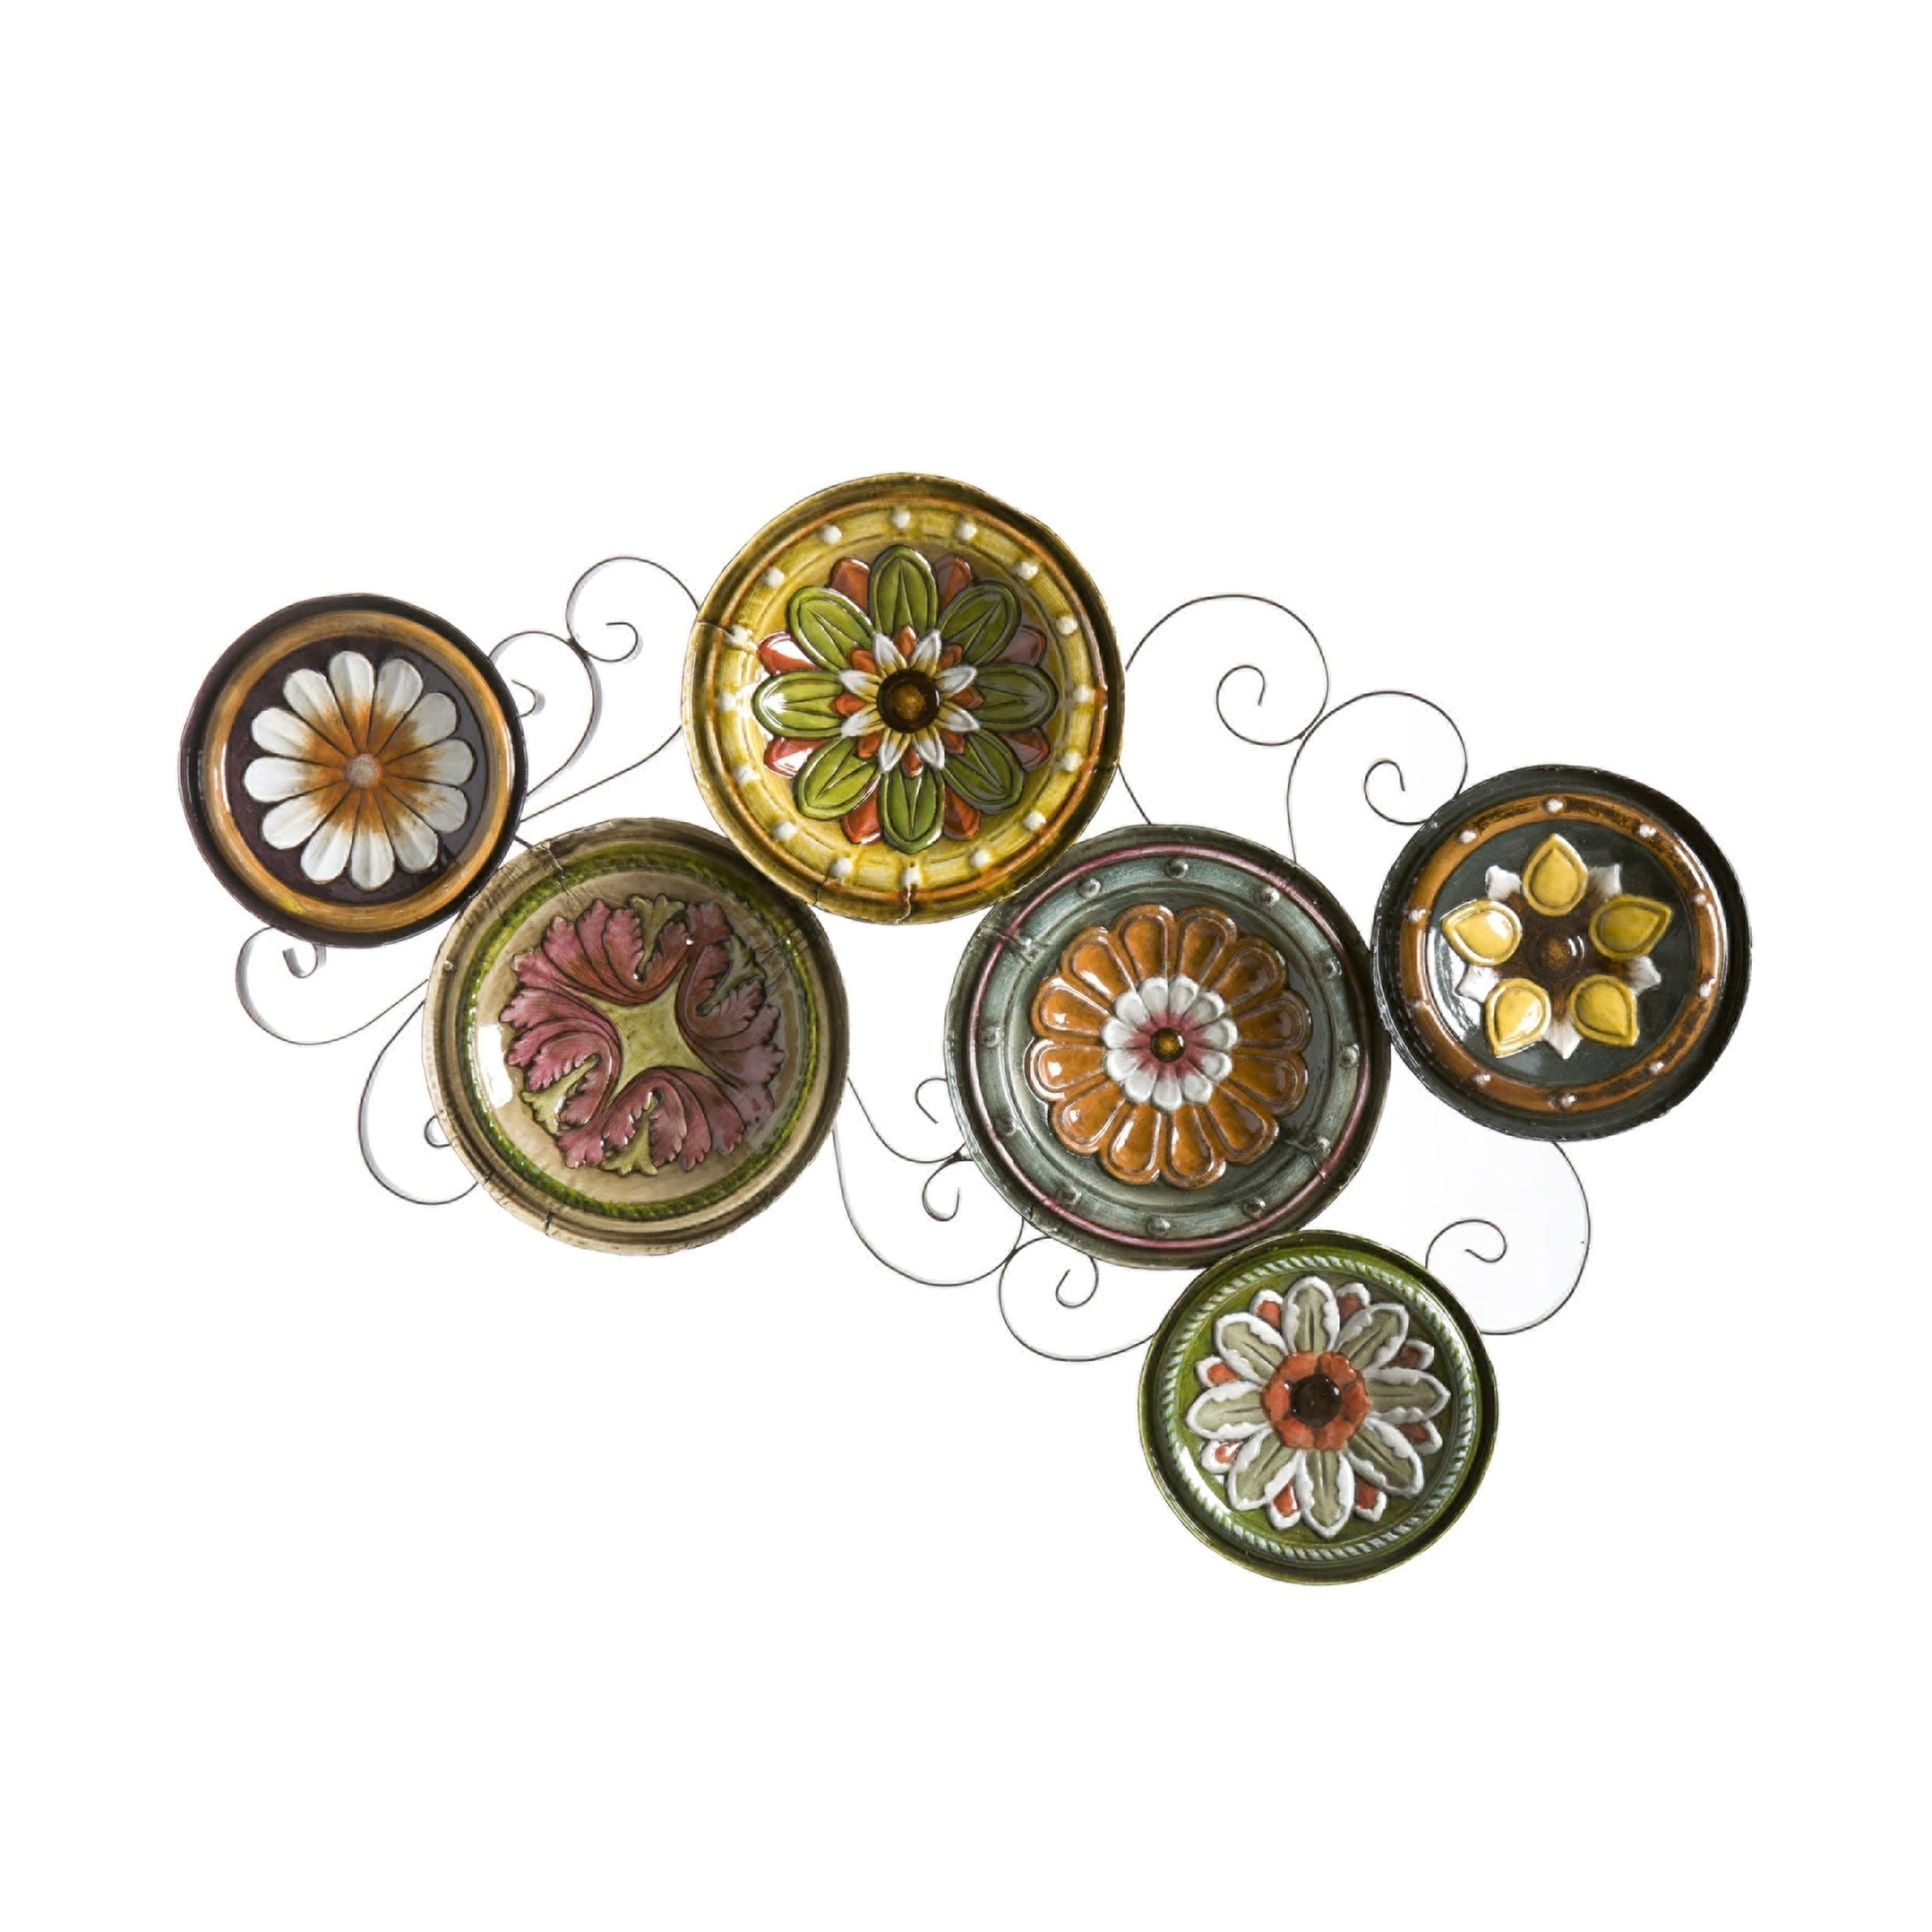 Well Known Italian Plates Wall Art Sets With Regard To Harper Blvd Forli Scattered 6 Piece Italian Plates Wall Art Set (View 14 of 15)